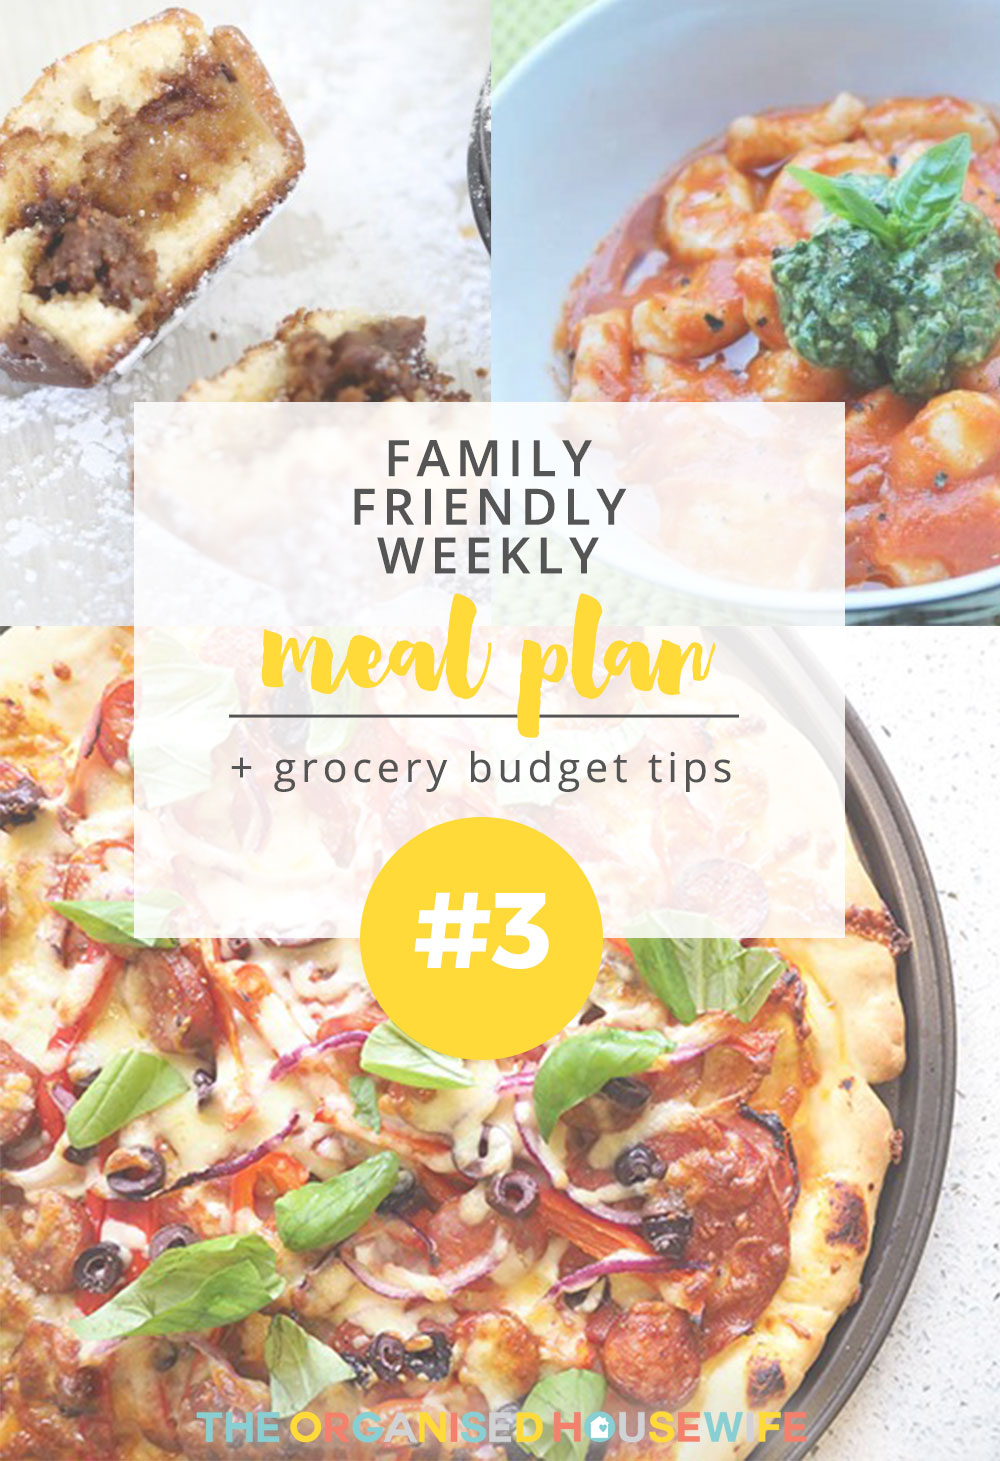 Not only does having a weekly meal plan avoid stress in the afternoon and night, but you can plan your grocery shop accordingly. I hope this week is full of happiness, joy and, of course, delicious meals for you. Happy cooking!